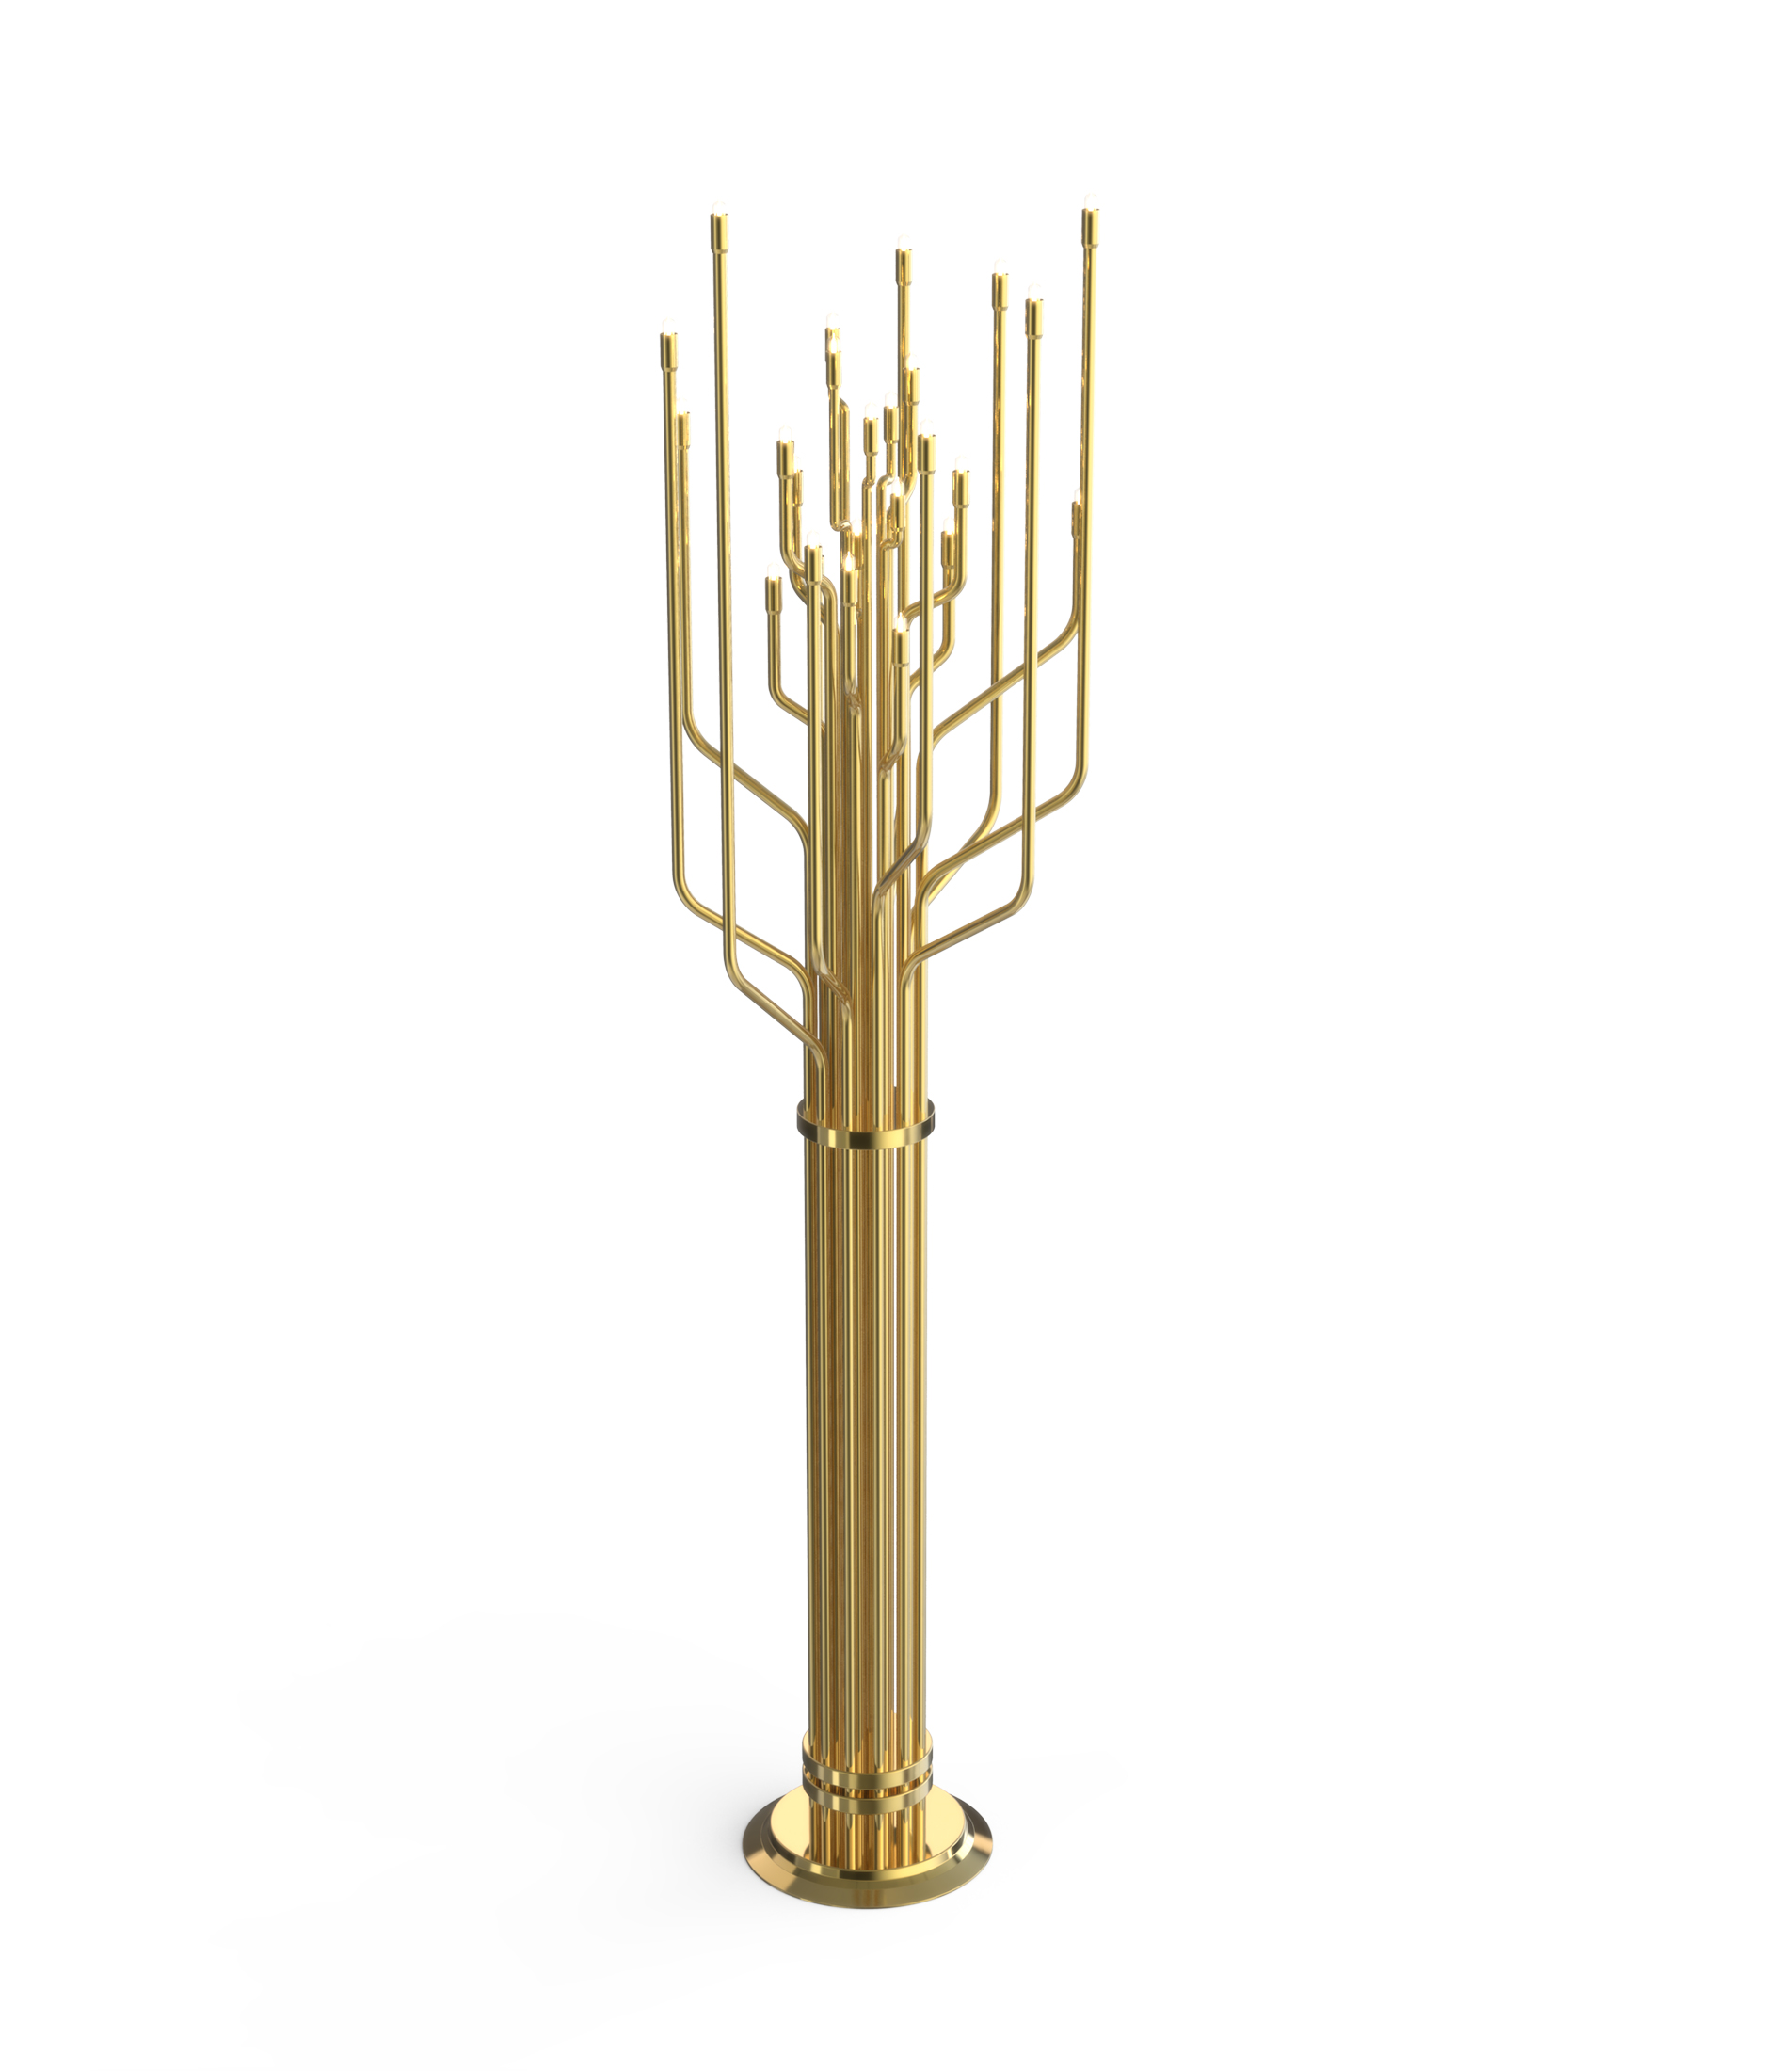 Bright Ideas A Brass Floor Lamp for Your Contemporary Design 1 brass floor lamp Bright Ideas: A Brass Floor Lamp for Your Contemporary Design Bright Ideas A Brass Floor Lamp for Your Contemporary Design 7